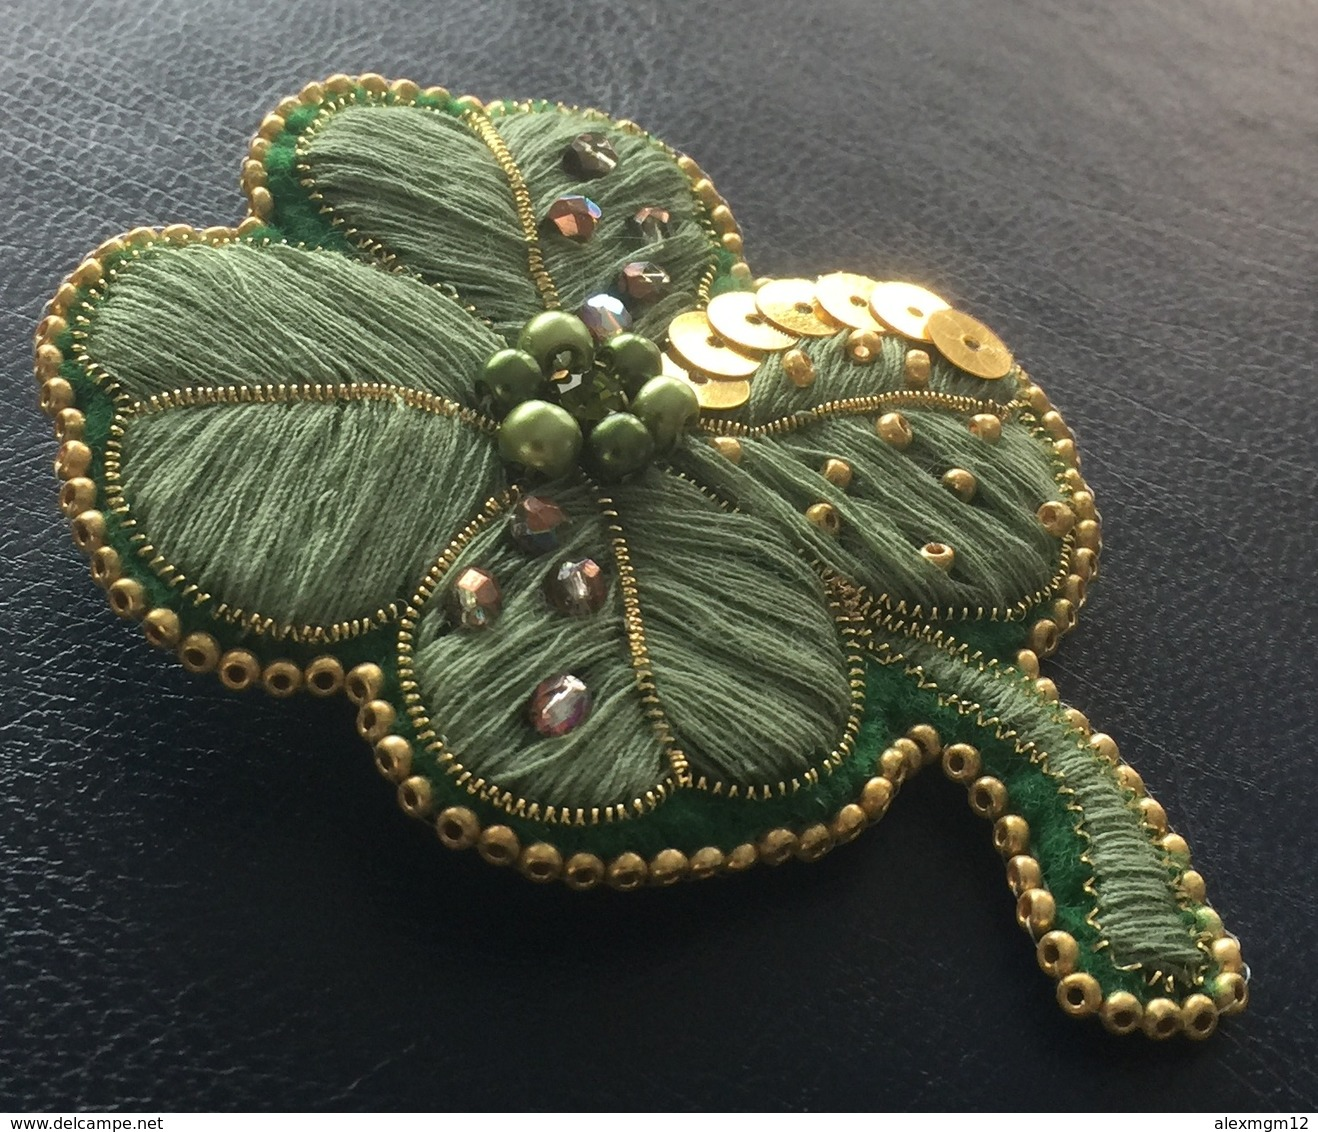 My Lucky Clover, Handcrafted Brooch, Beads Embroidery, Unique, Handmade - Brooches